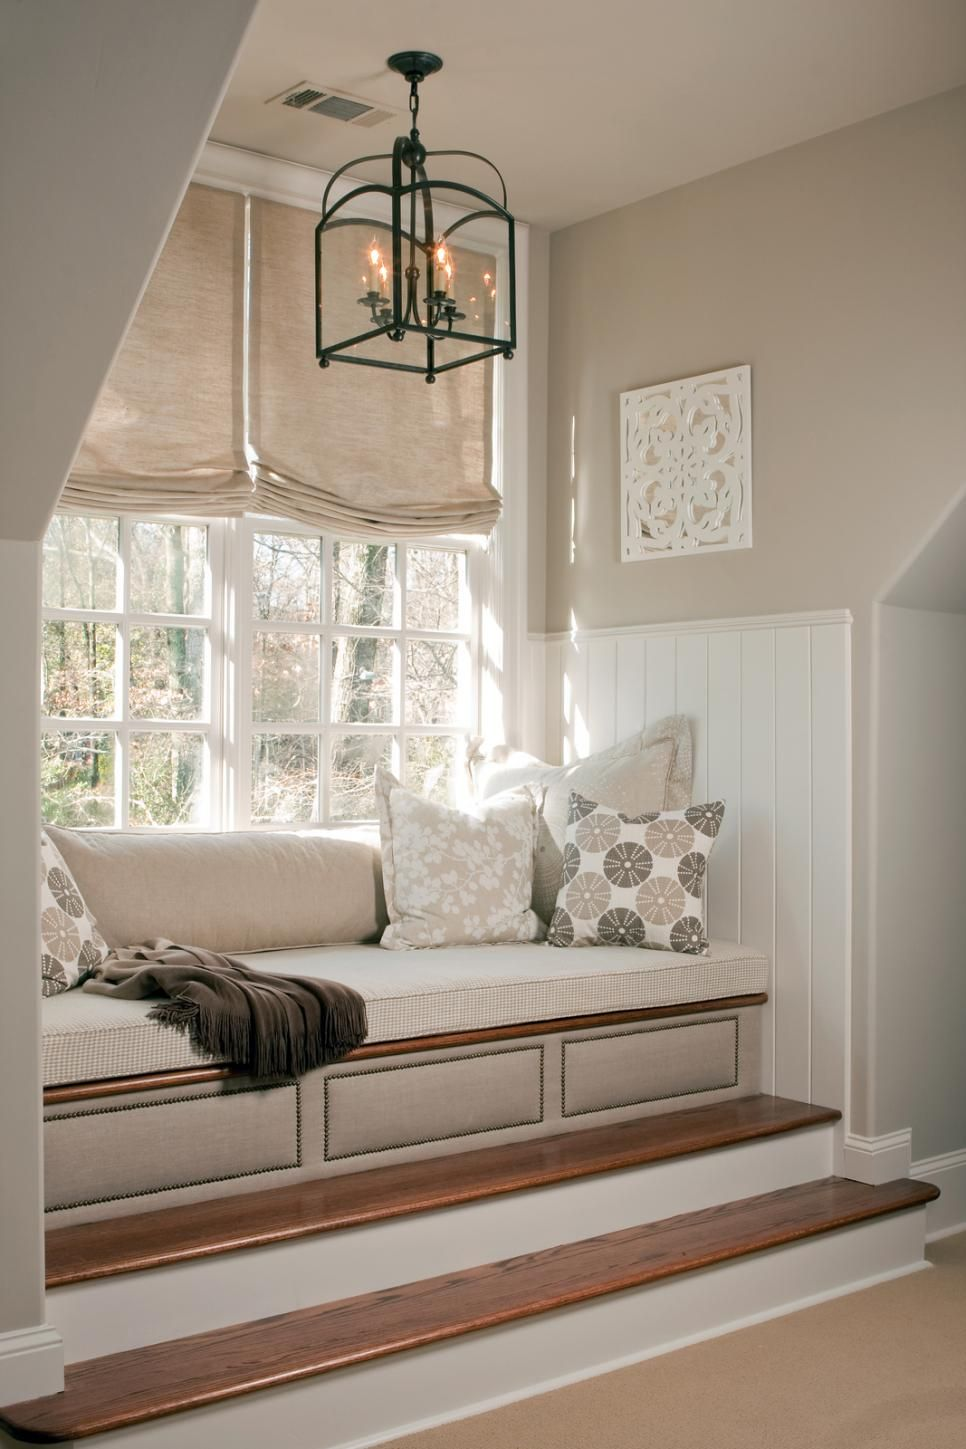 Window seat storage camps pinterest - Cozy Window Seats We Love